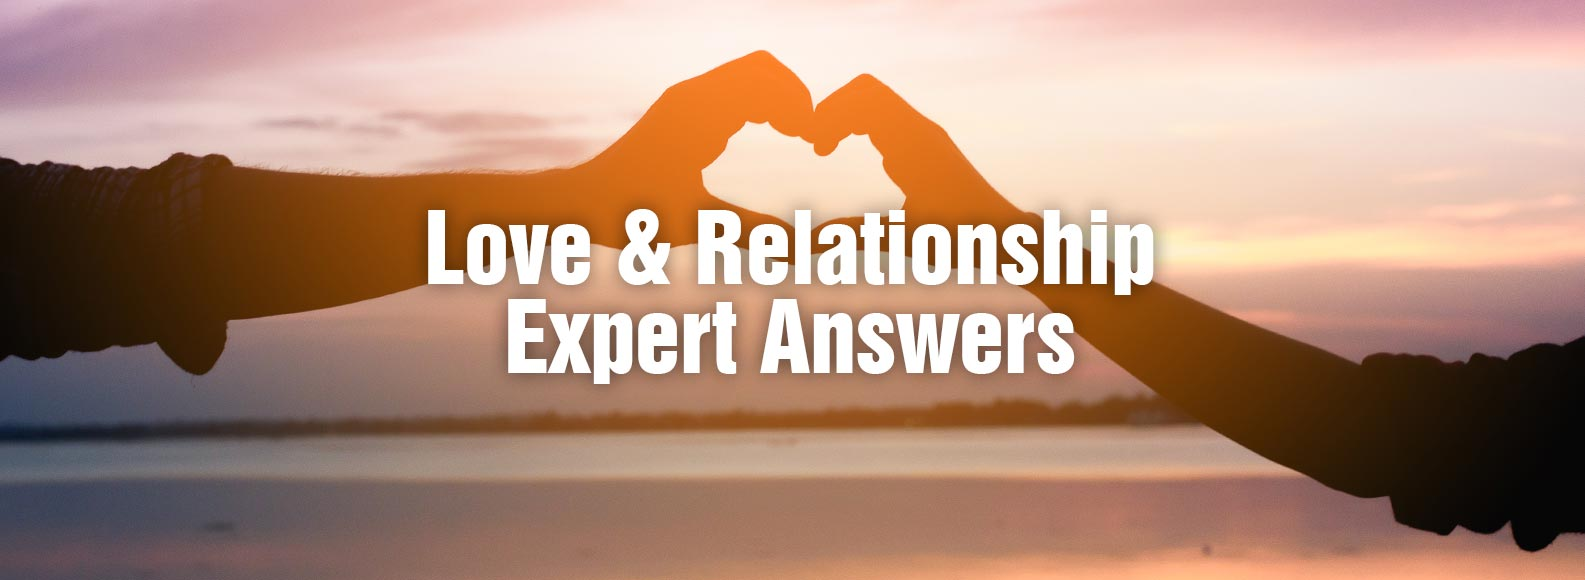 Love & Relationship Expert Answers  - Psychics Readings